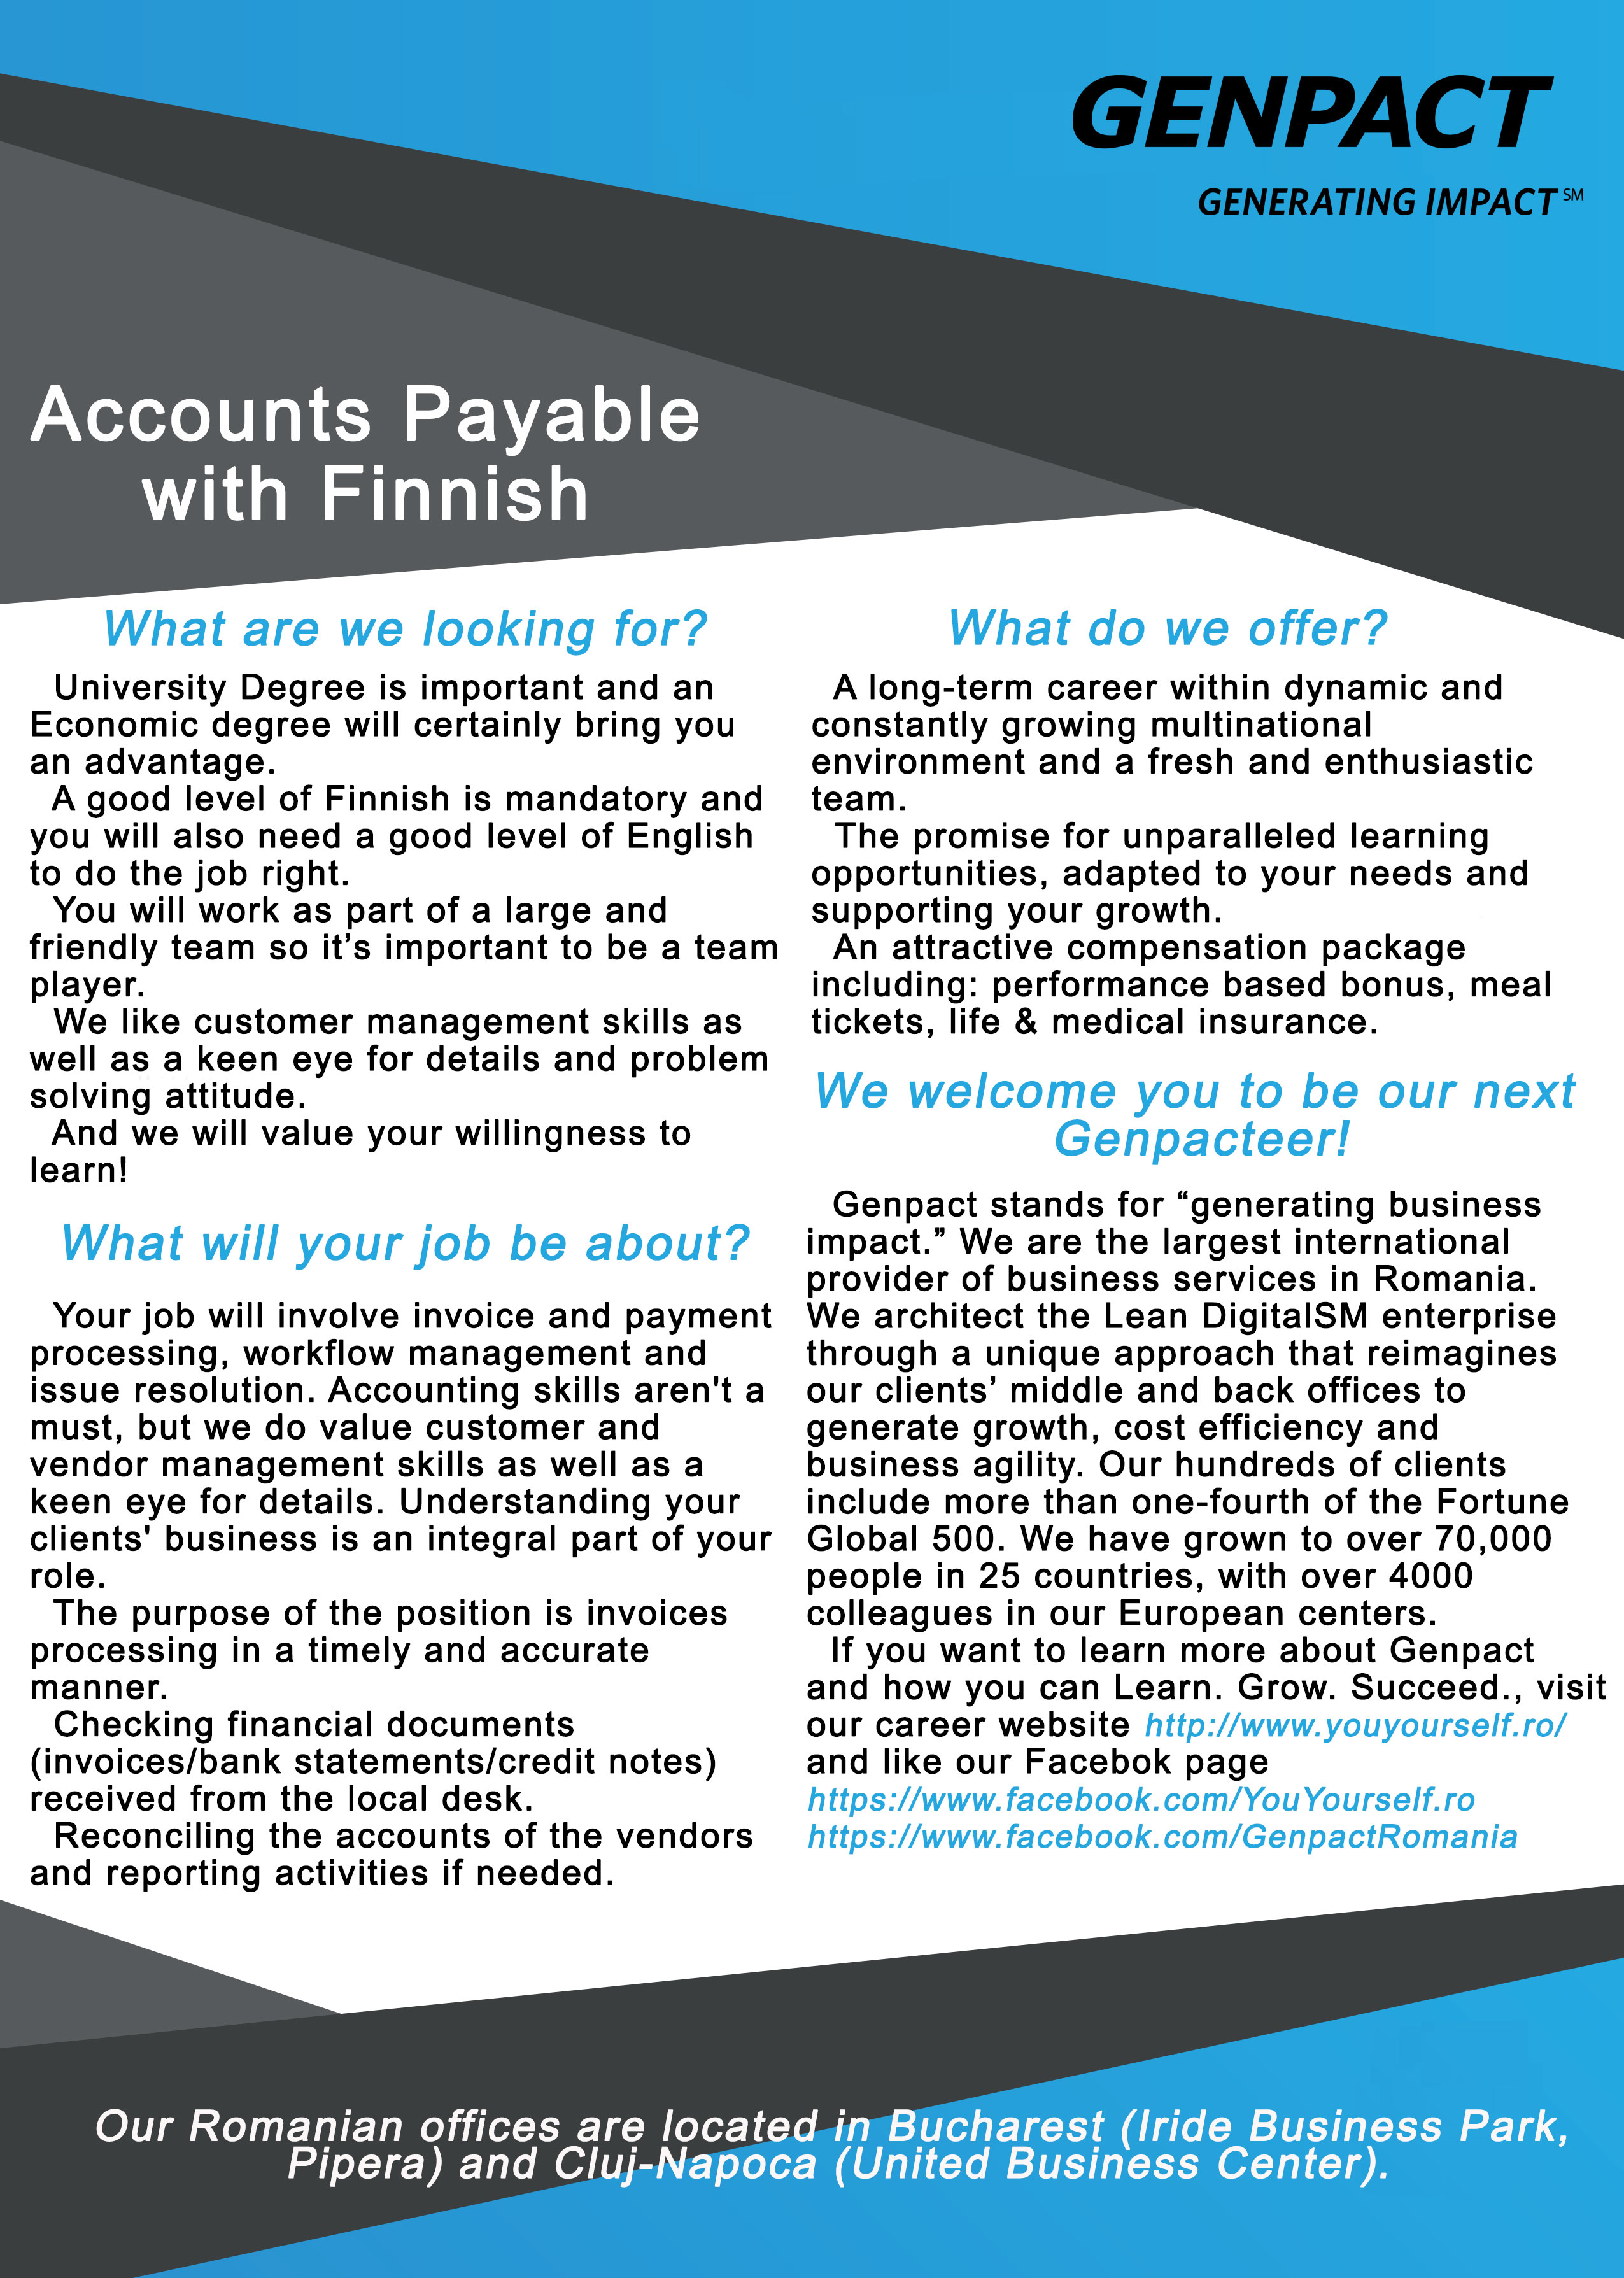 Accounts Payable with Finnish